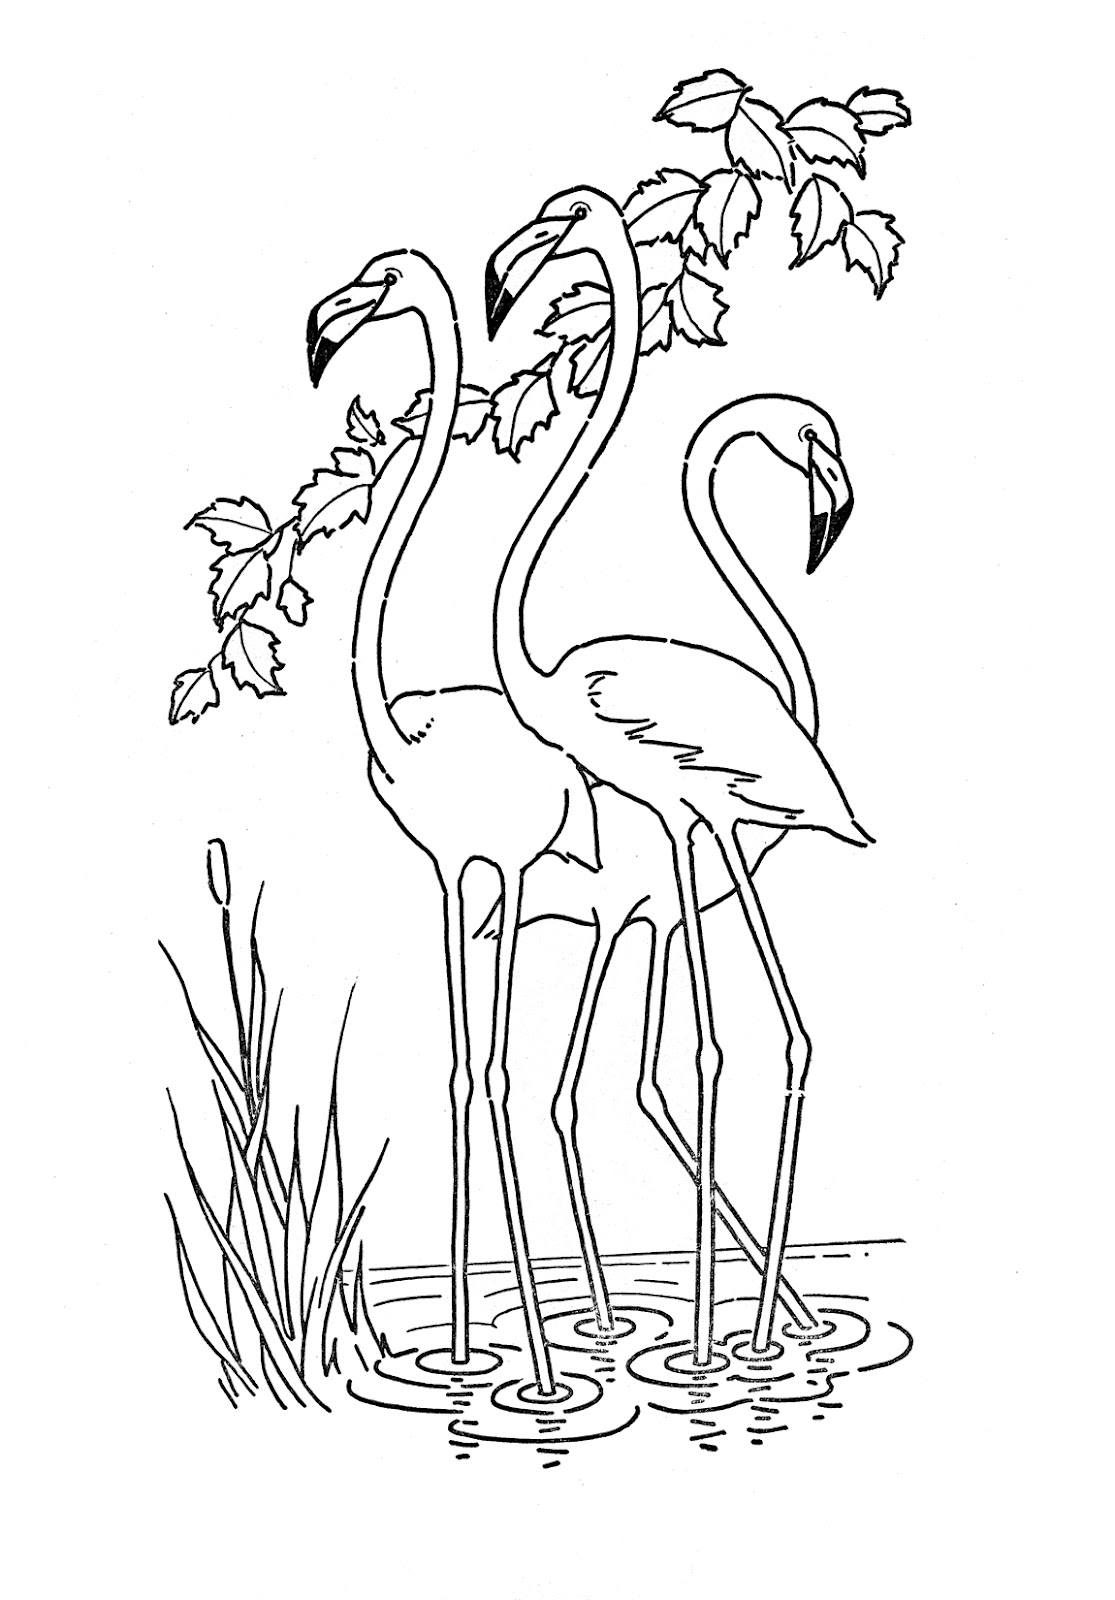 coloring clipart of kids students doing homework black and white coloring book page coloring of clipart kids